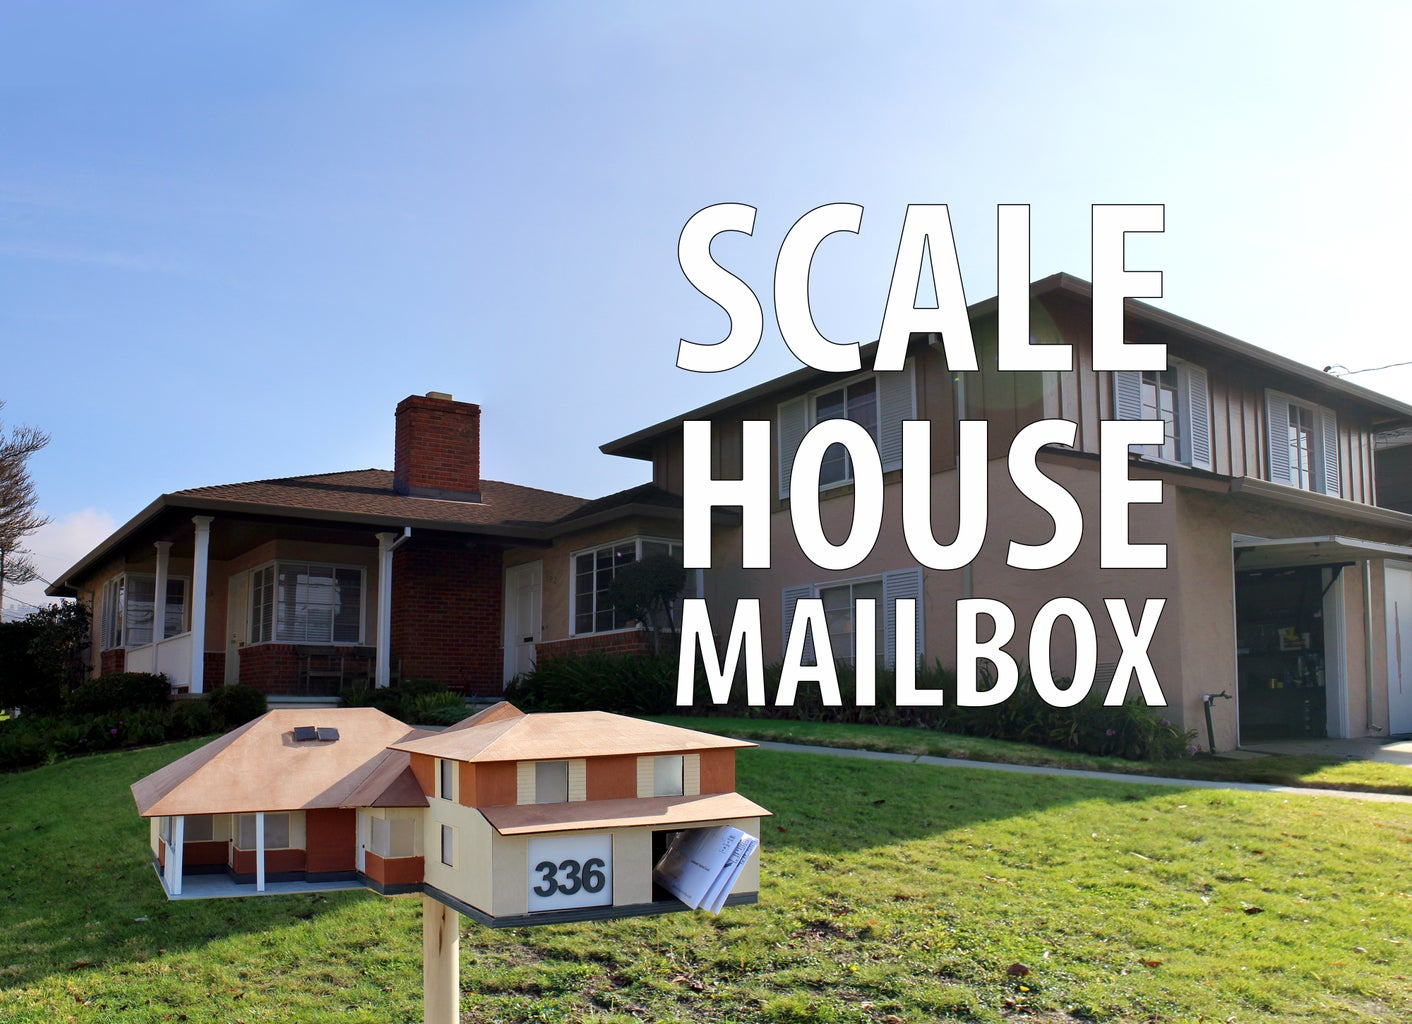 Scale House Mailbox